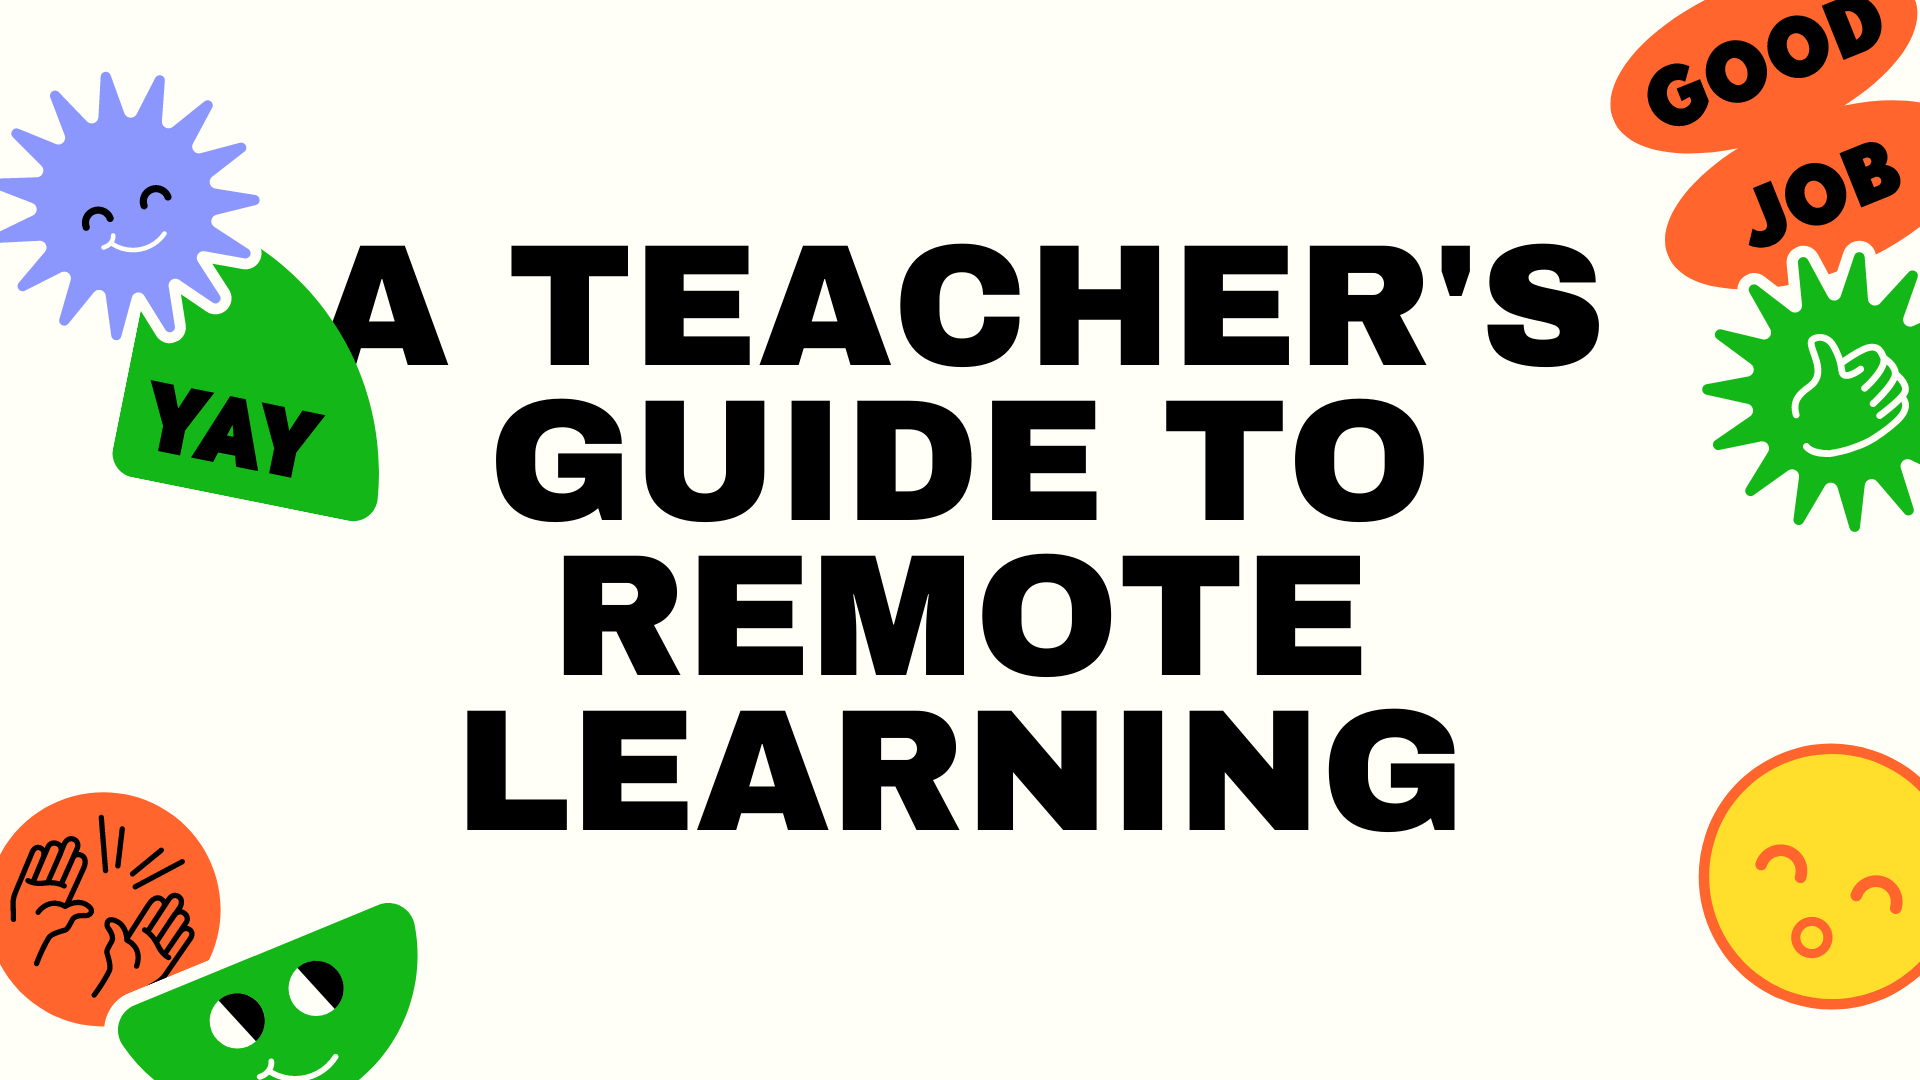 Tackling Remote Learning